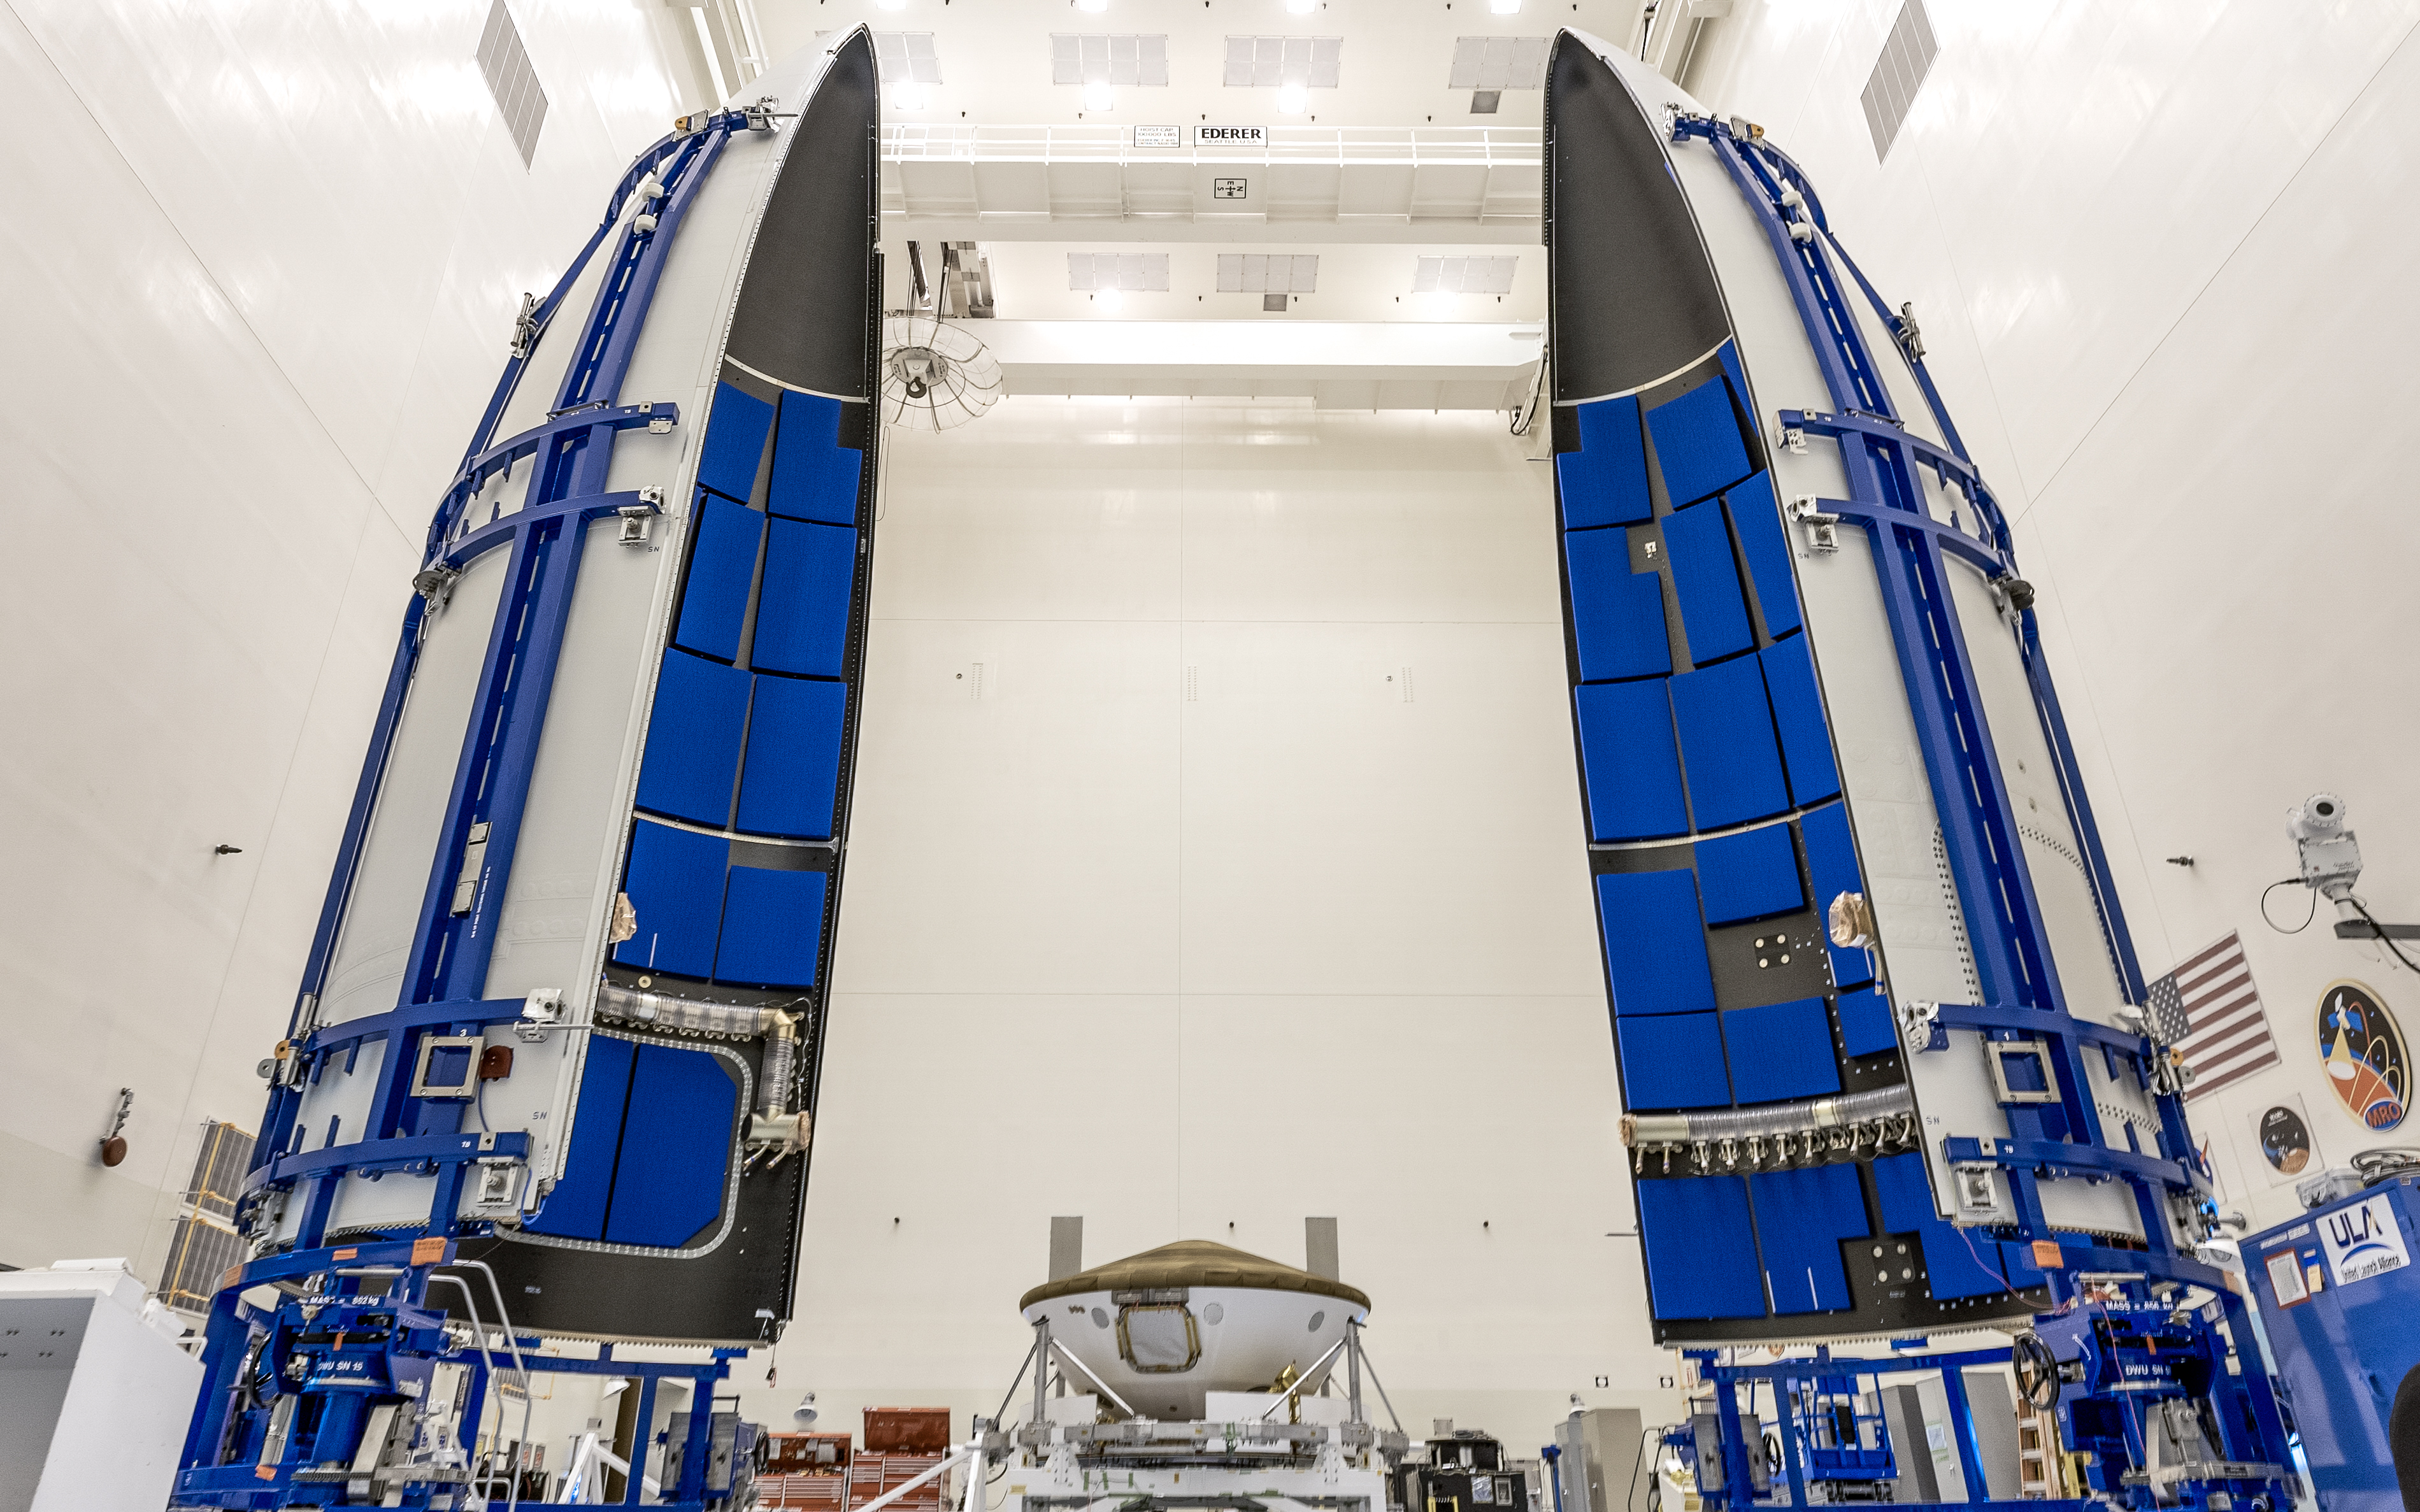 Perseverance rover is being prepared for encapsulation in the Atlas V payload fairing